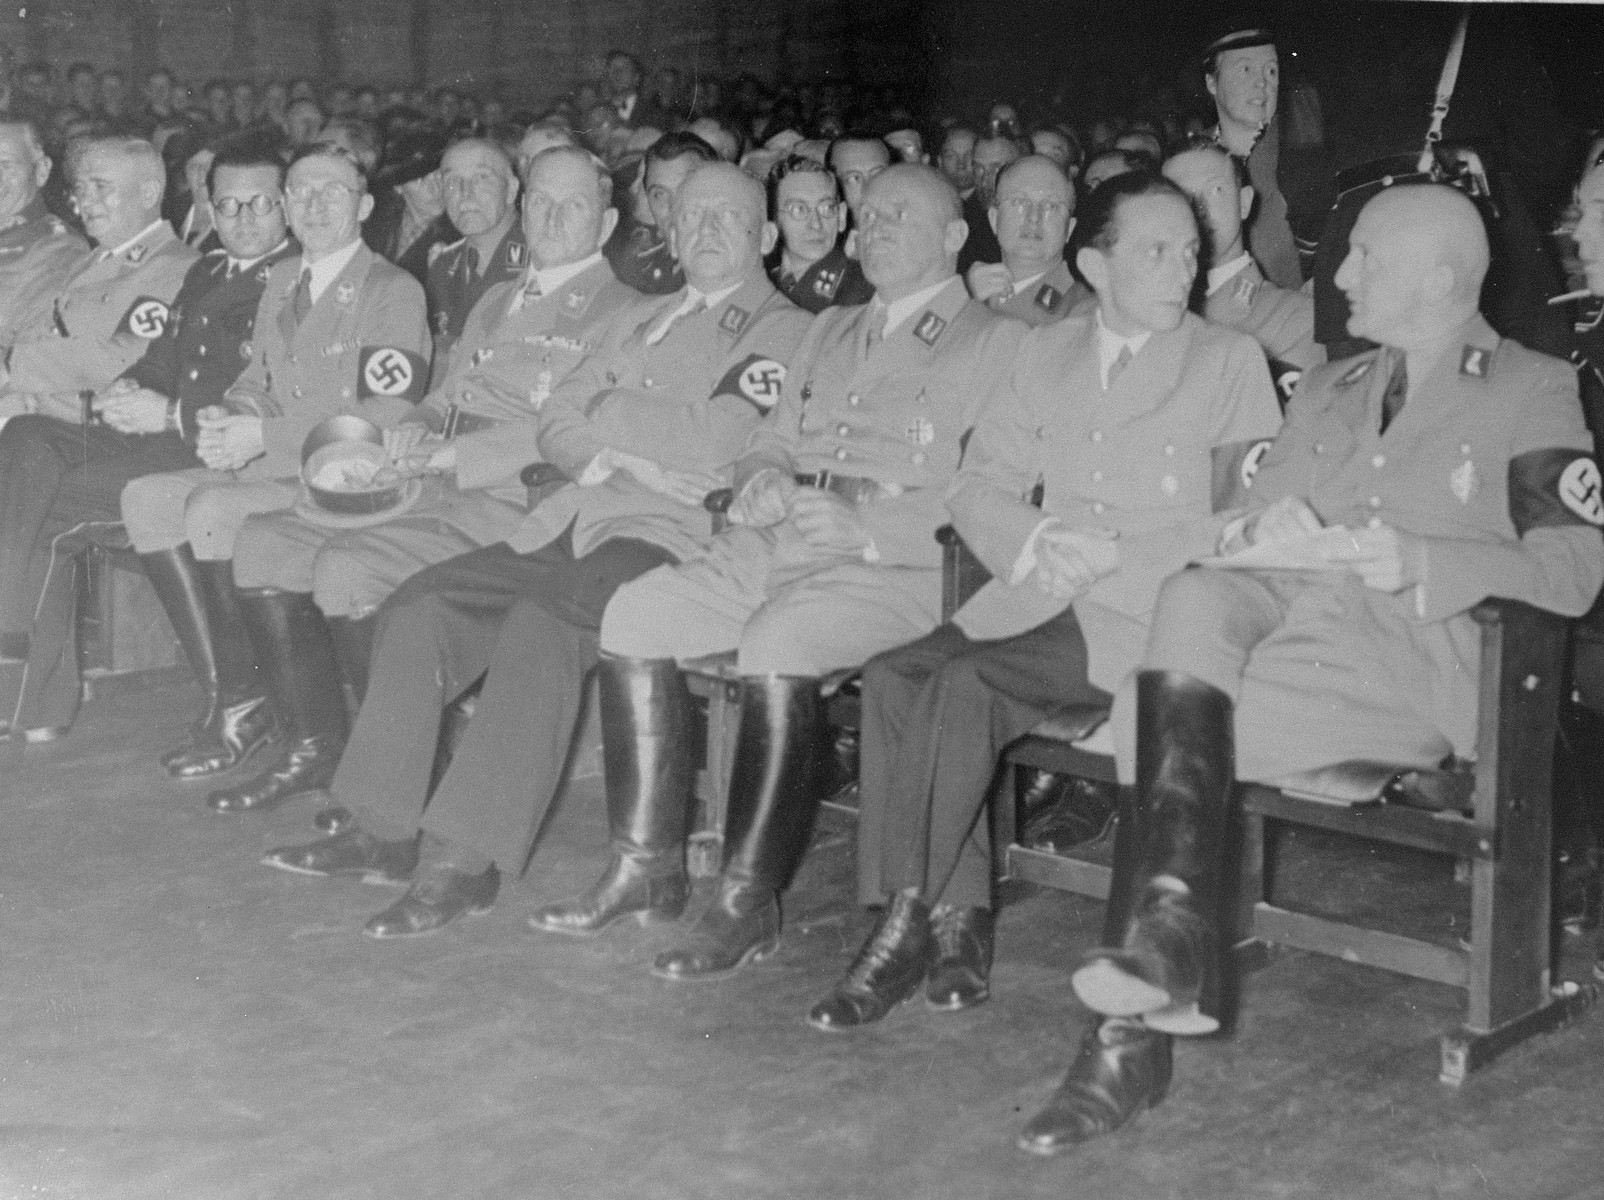 "Julius Streicher, Joseph Goebbels and other Nazi officials attend the opening ceremony for ""The Eternal Jew"" in Munich.  The individuals in the front row (left to right) have been identified as General Werner von Blomberg (partial view), Ludwig Siebert, Phillip Bouhler, Karl Fiehler, Franz Xaver Ritter von Epp, Adolf Wagner, Julius Streicher, Josef Goebbels, and Otto Nippold. Pictured in the second row, between Goebbels and Streicher is  Deputy Gauleiter Georg Tesche."